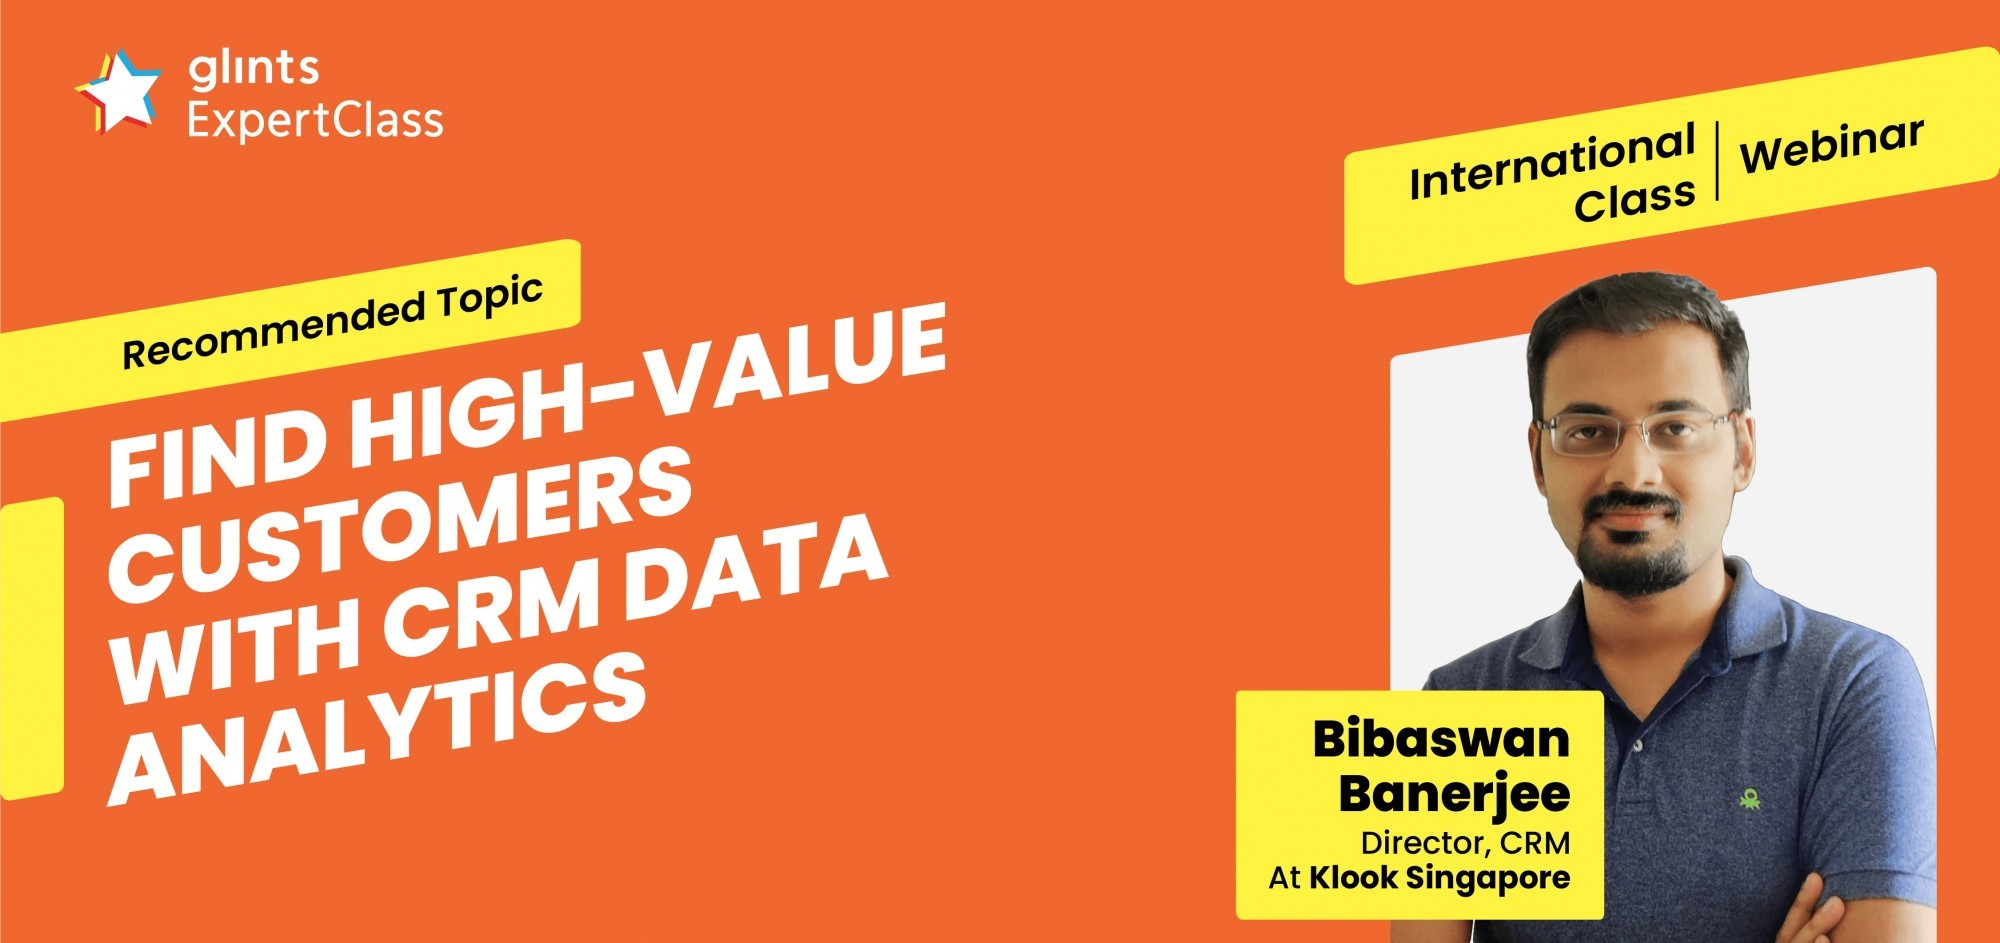 [Glints - GEC International Series] Find High-value Customer with CRM Data Analysis